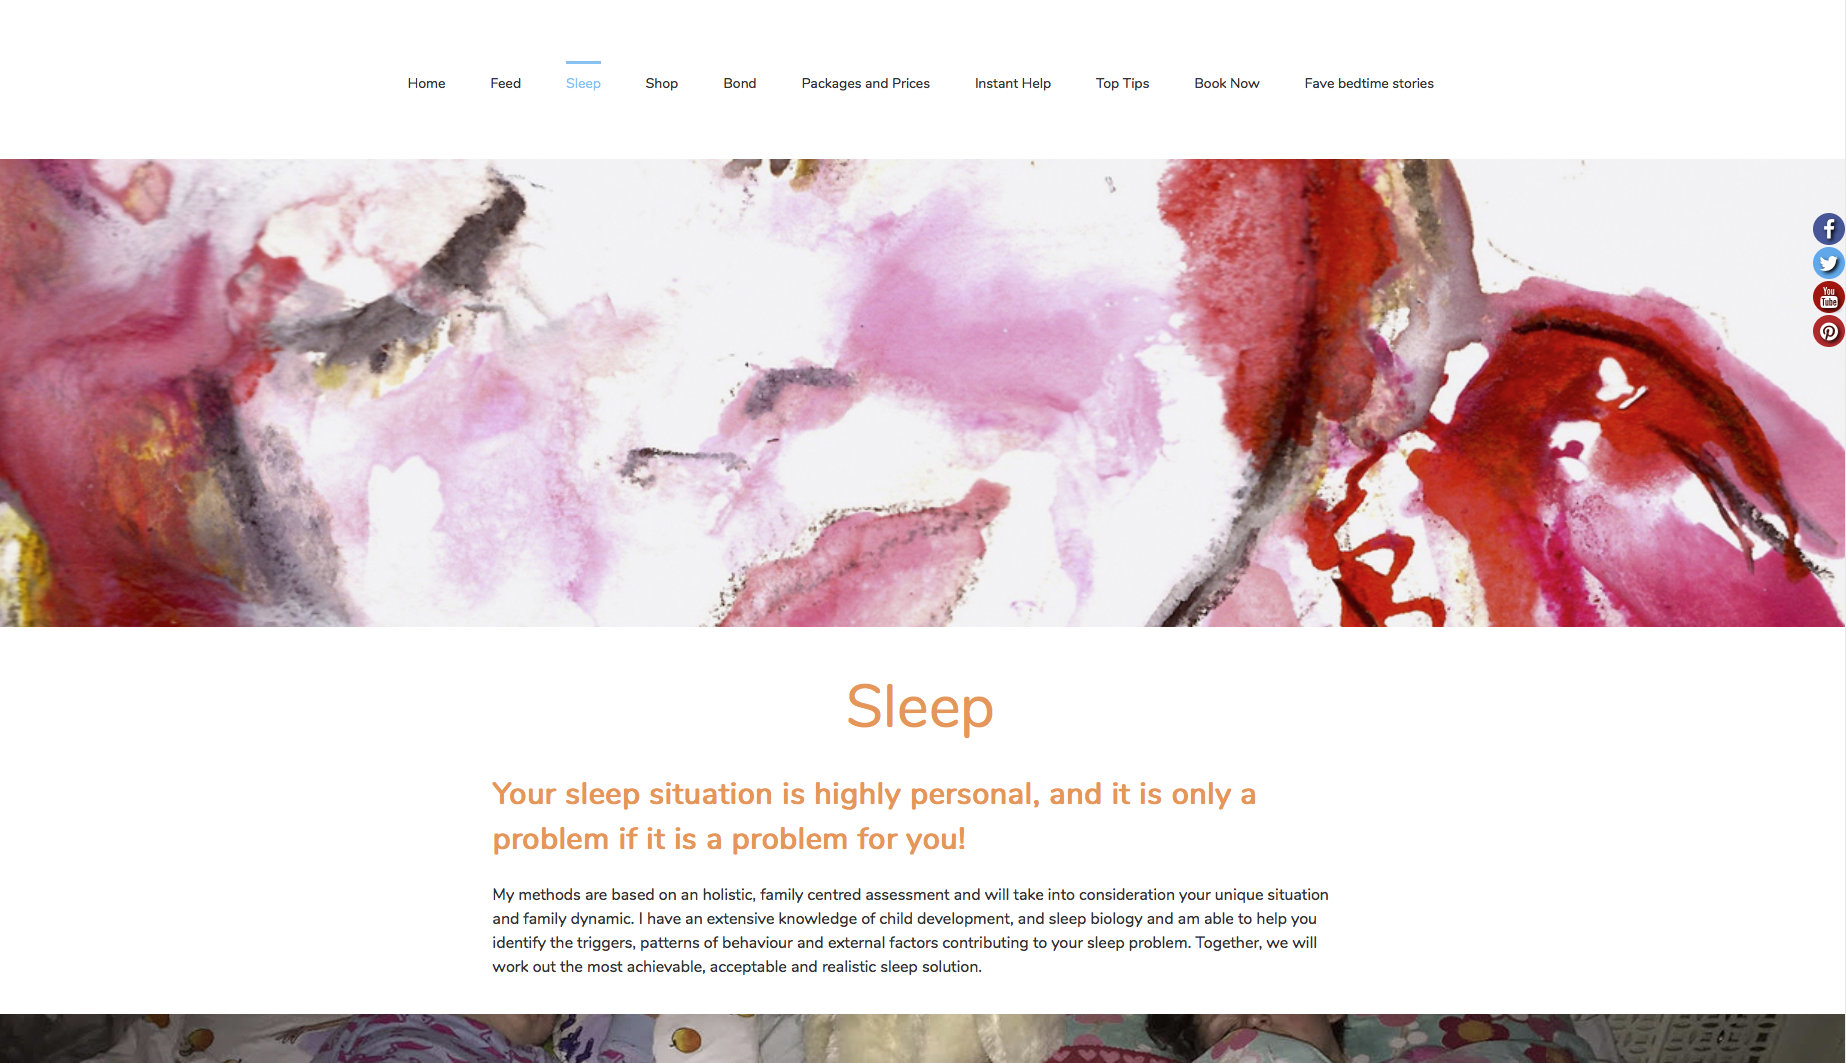 Sleep page from feed sleep bond website